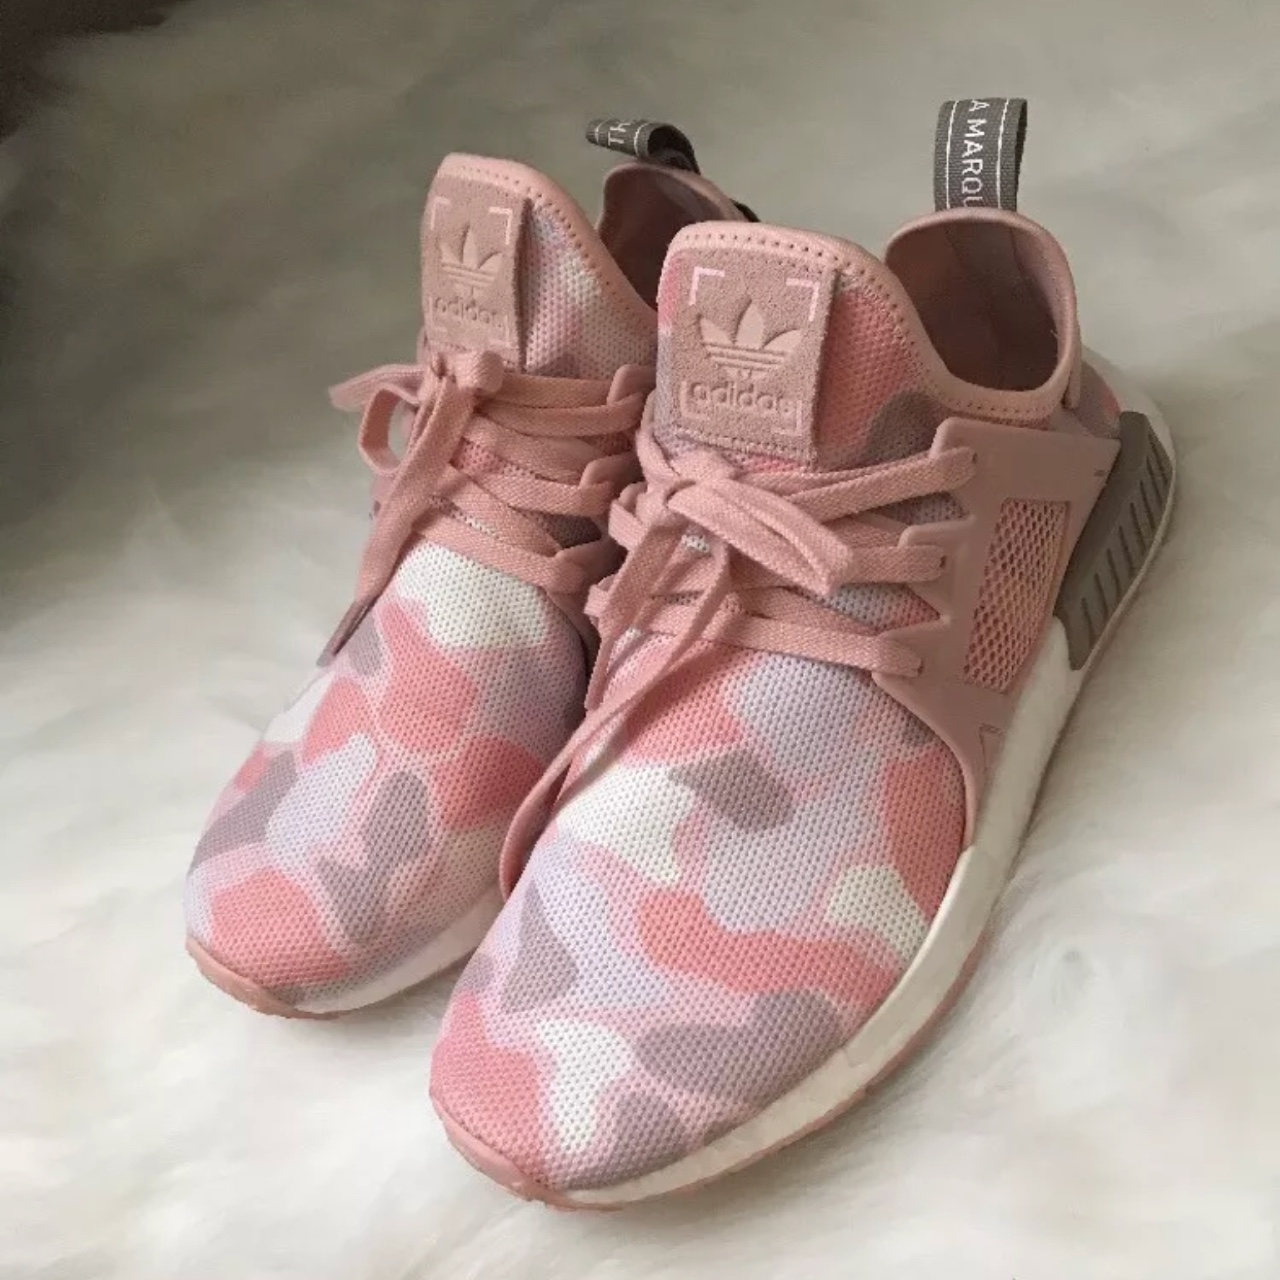 buy online fdcc9 4a2a2 Adidas NMD XR1 Pink Camo Size 9.5. Worn once. Comes ...